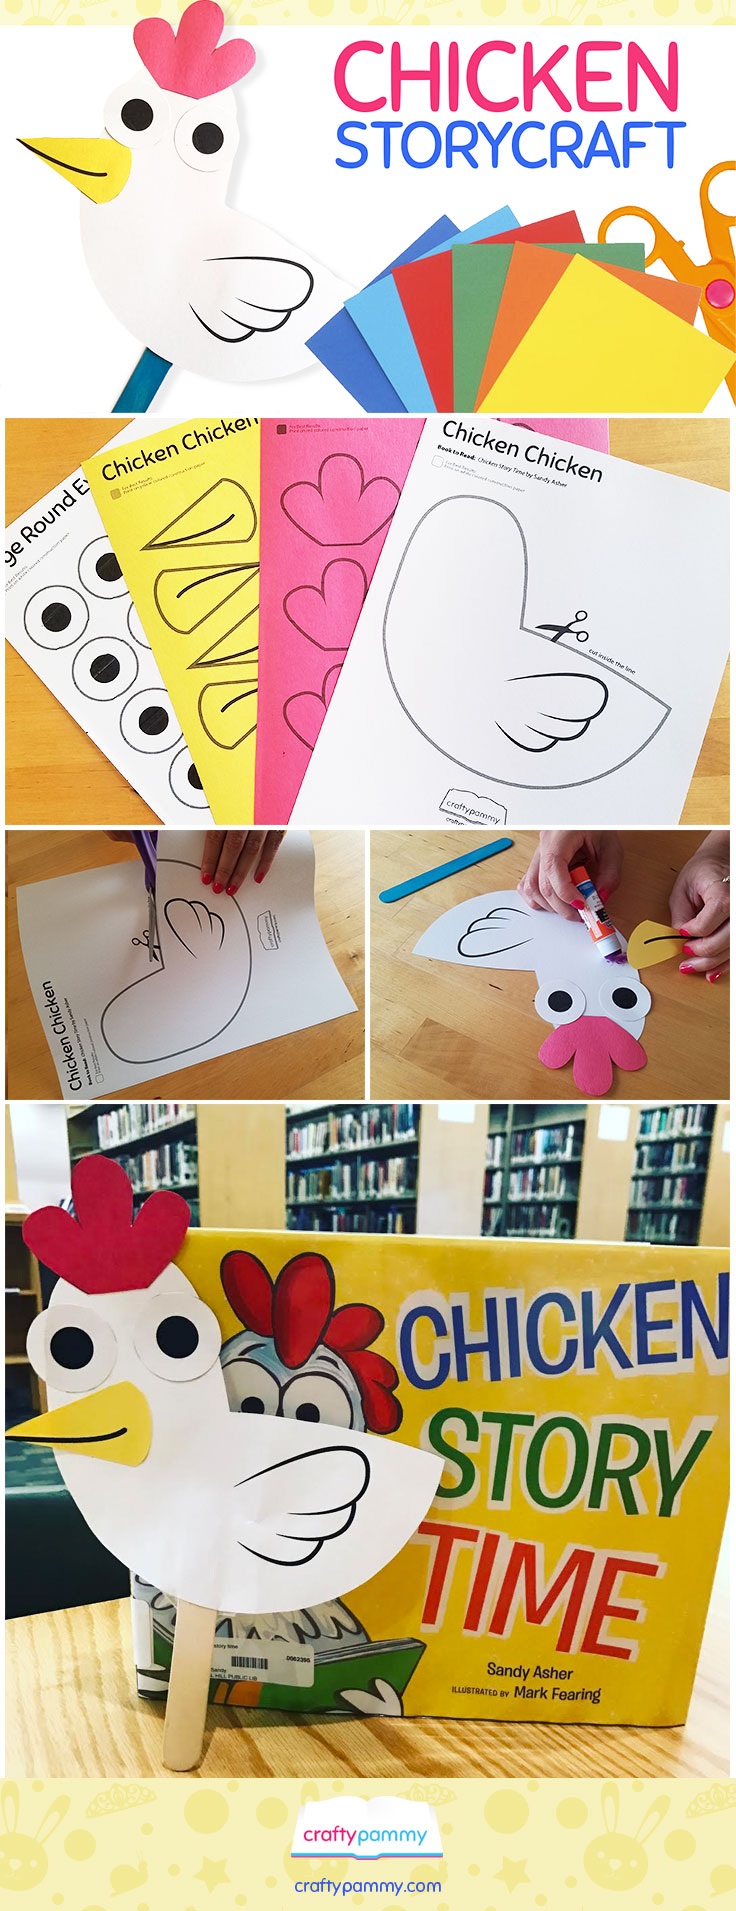 Chicken Storytime Story Craft